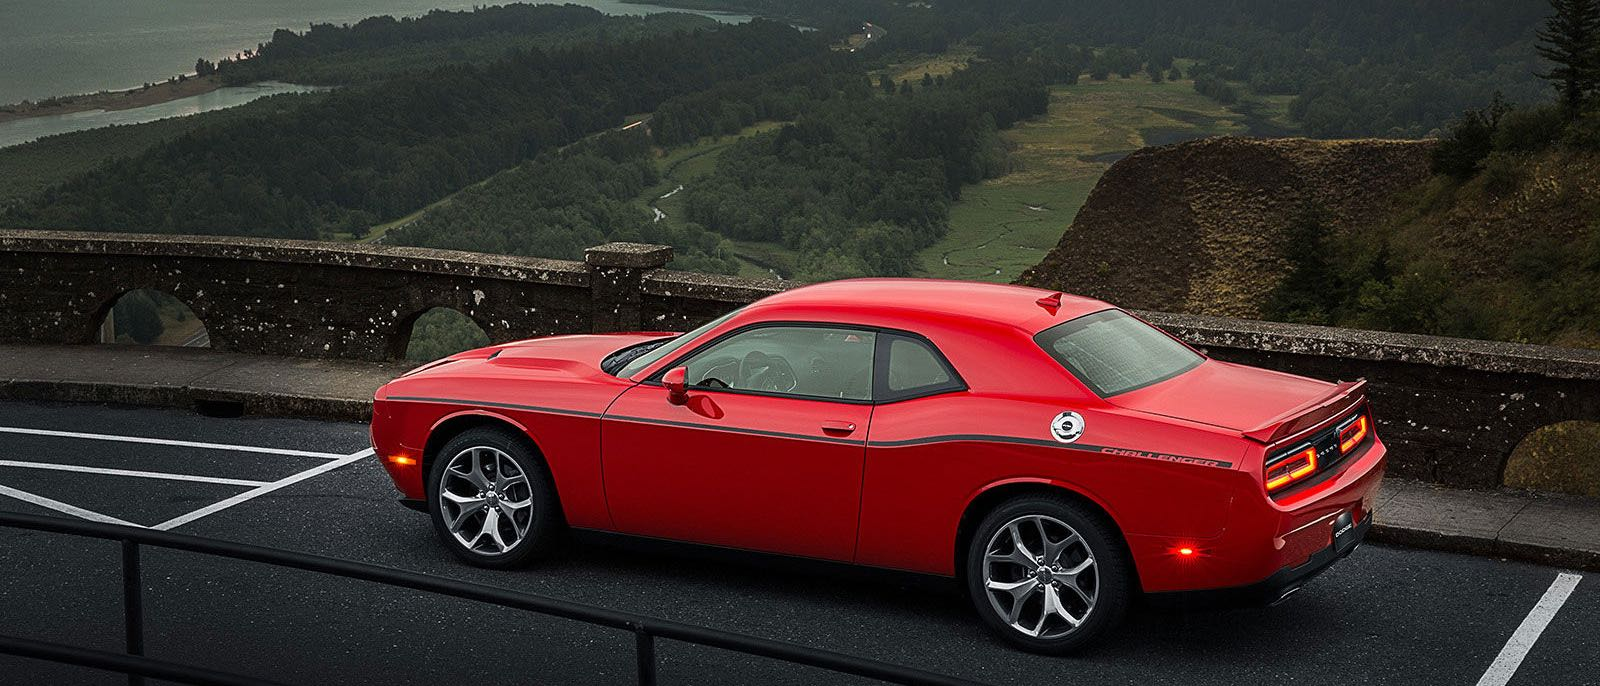 2016 Dodge Challenger red exterior